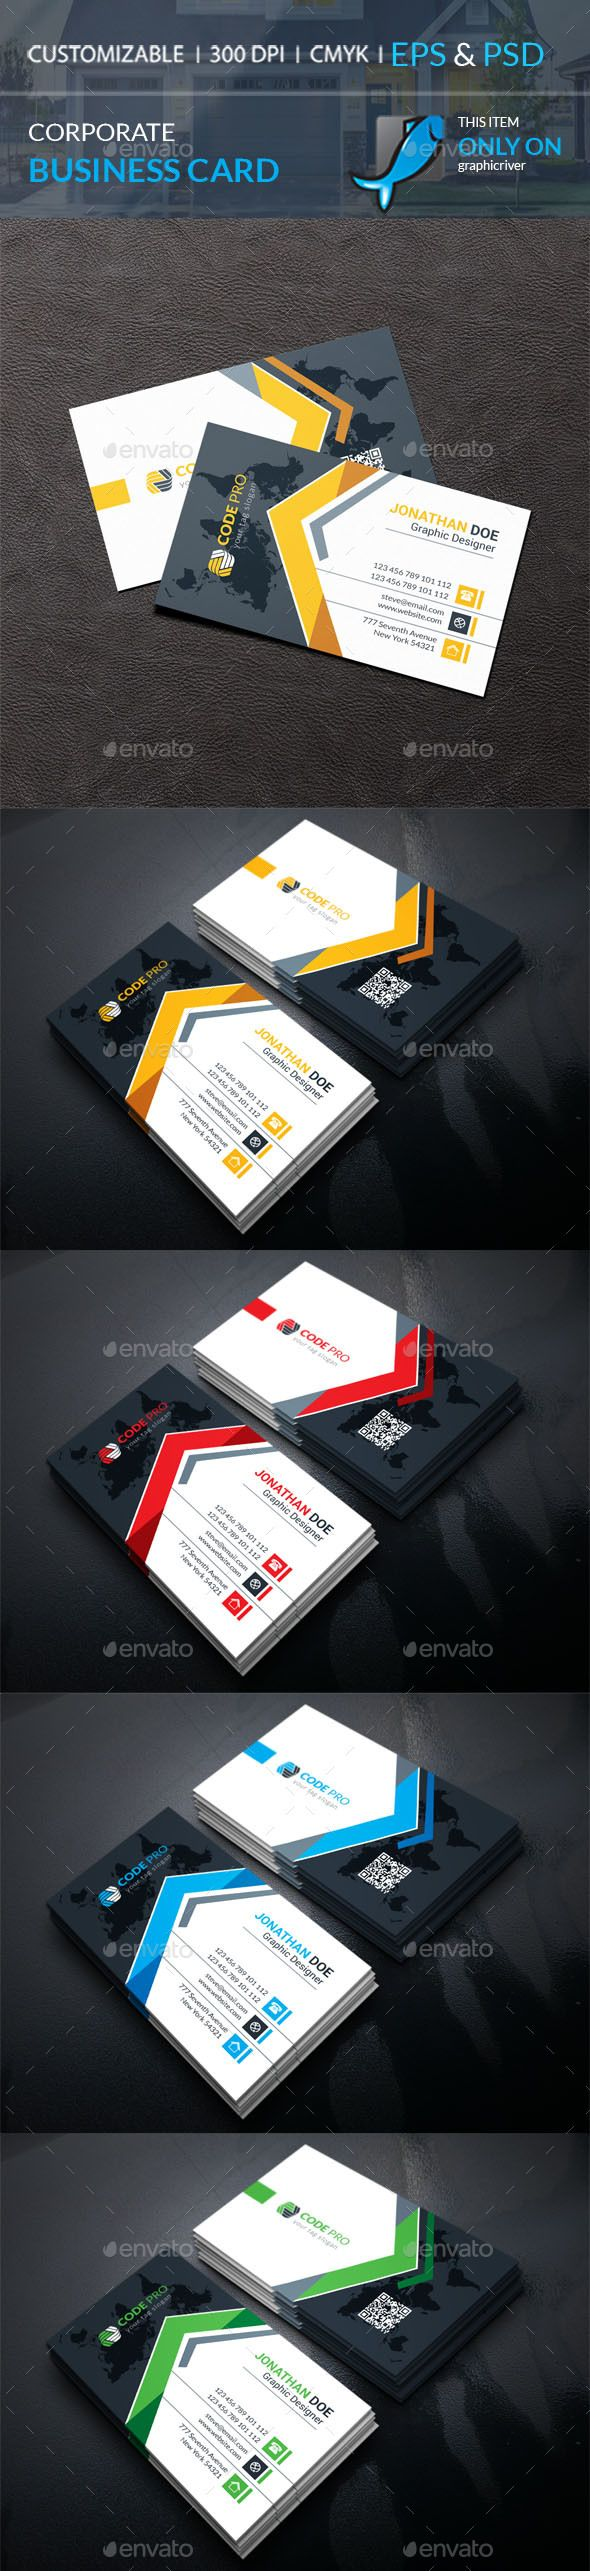 Portrait Carte De Visite Corporate Business Card Template PSD Vector EPS AI Illustrator